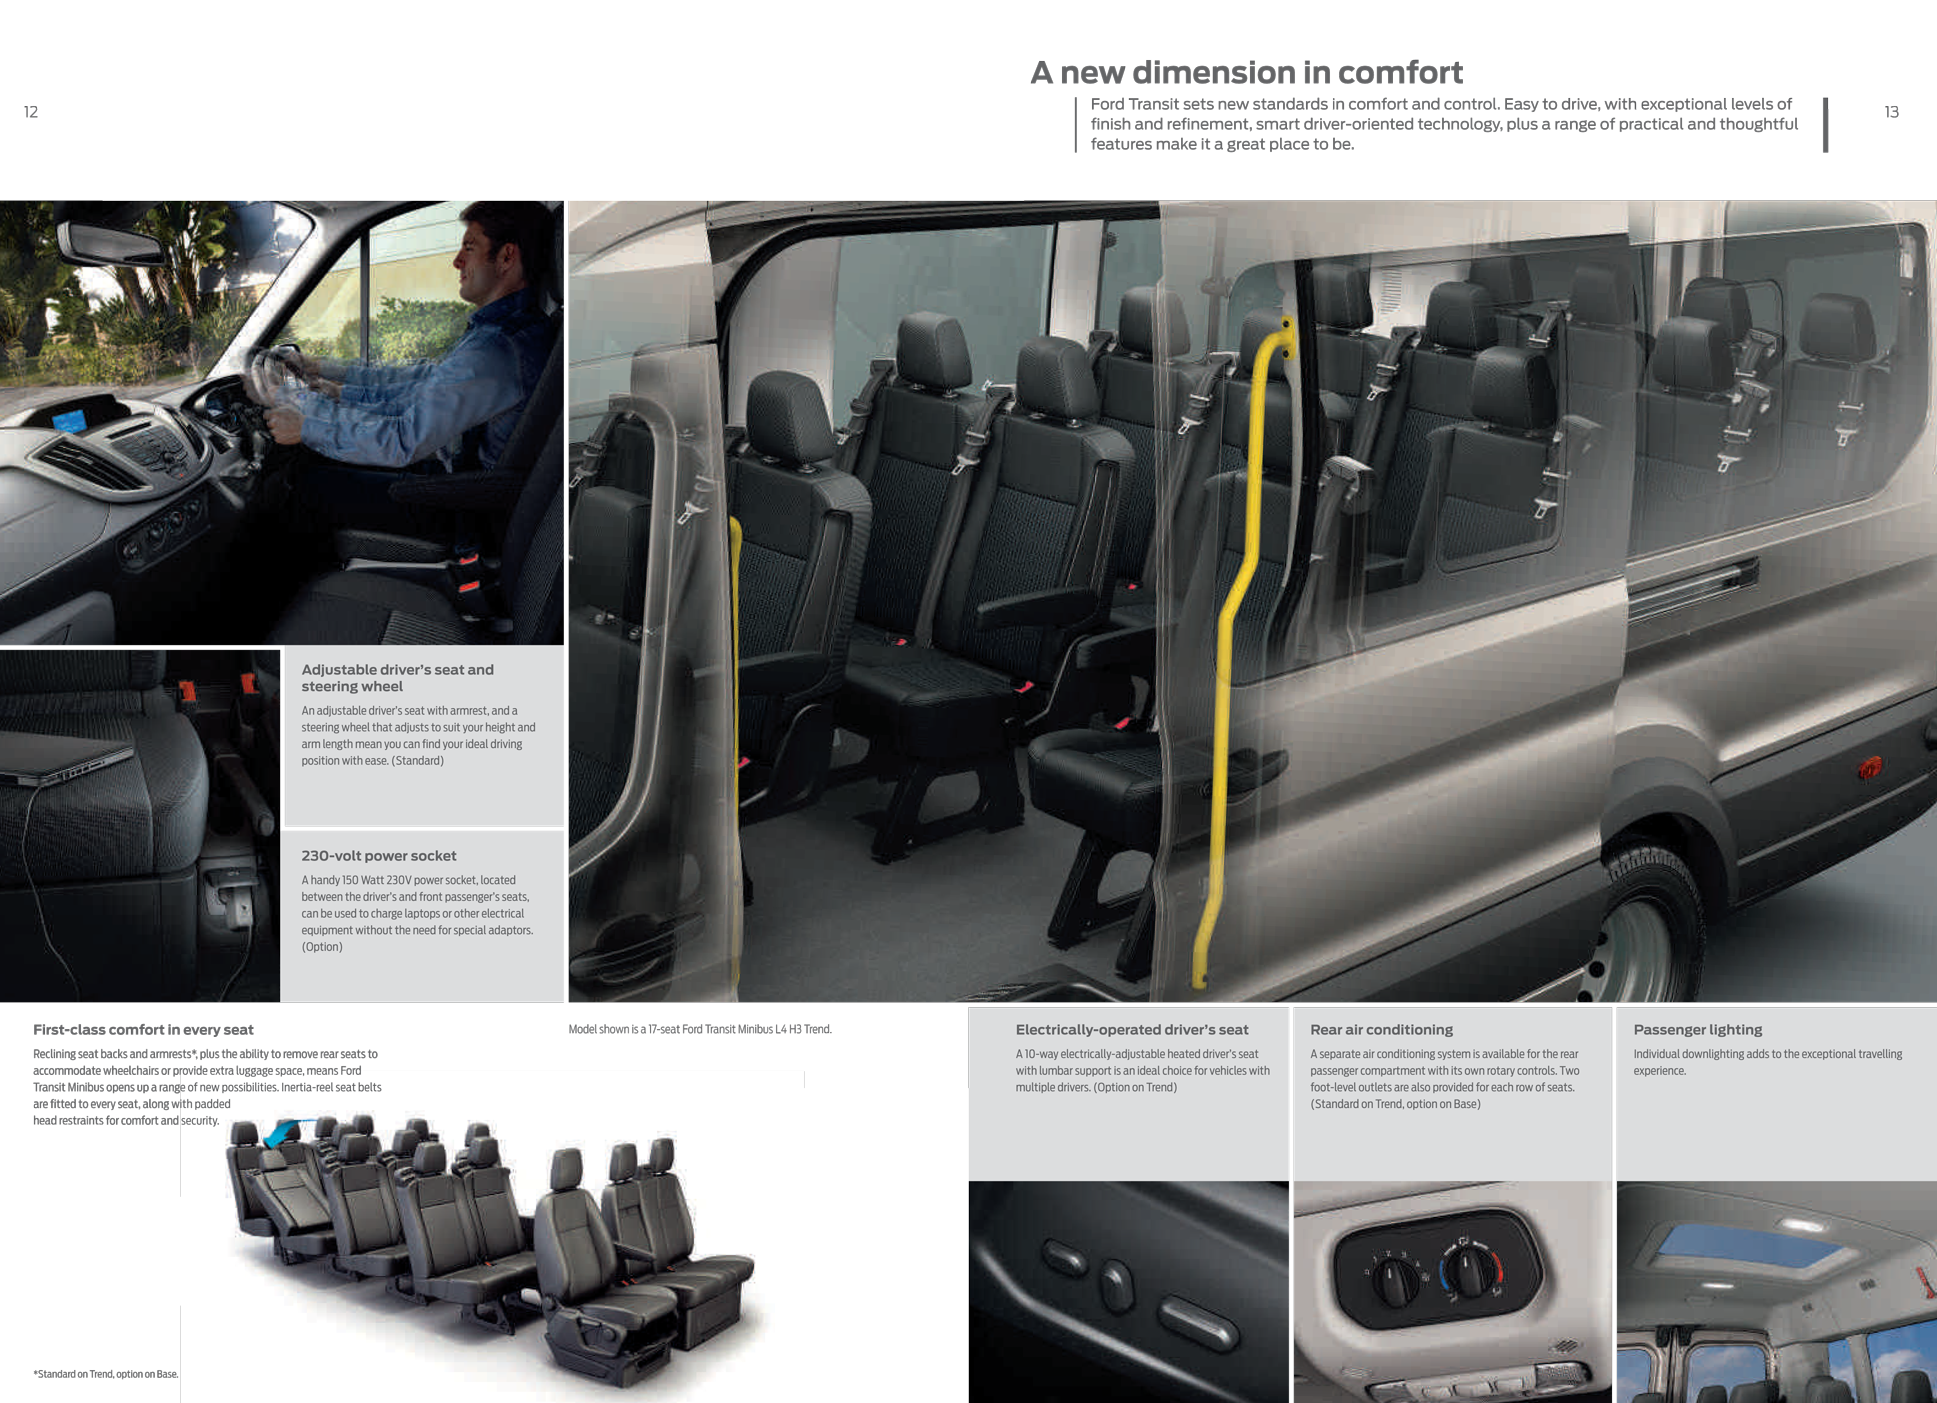 Ford Transit Minibus Leasing Information About Air Conditioning Systems New Br